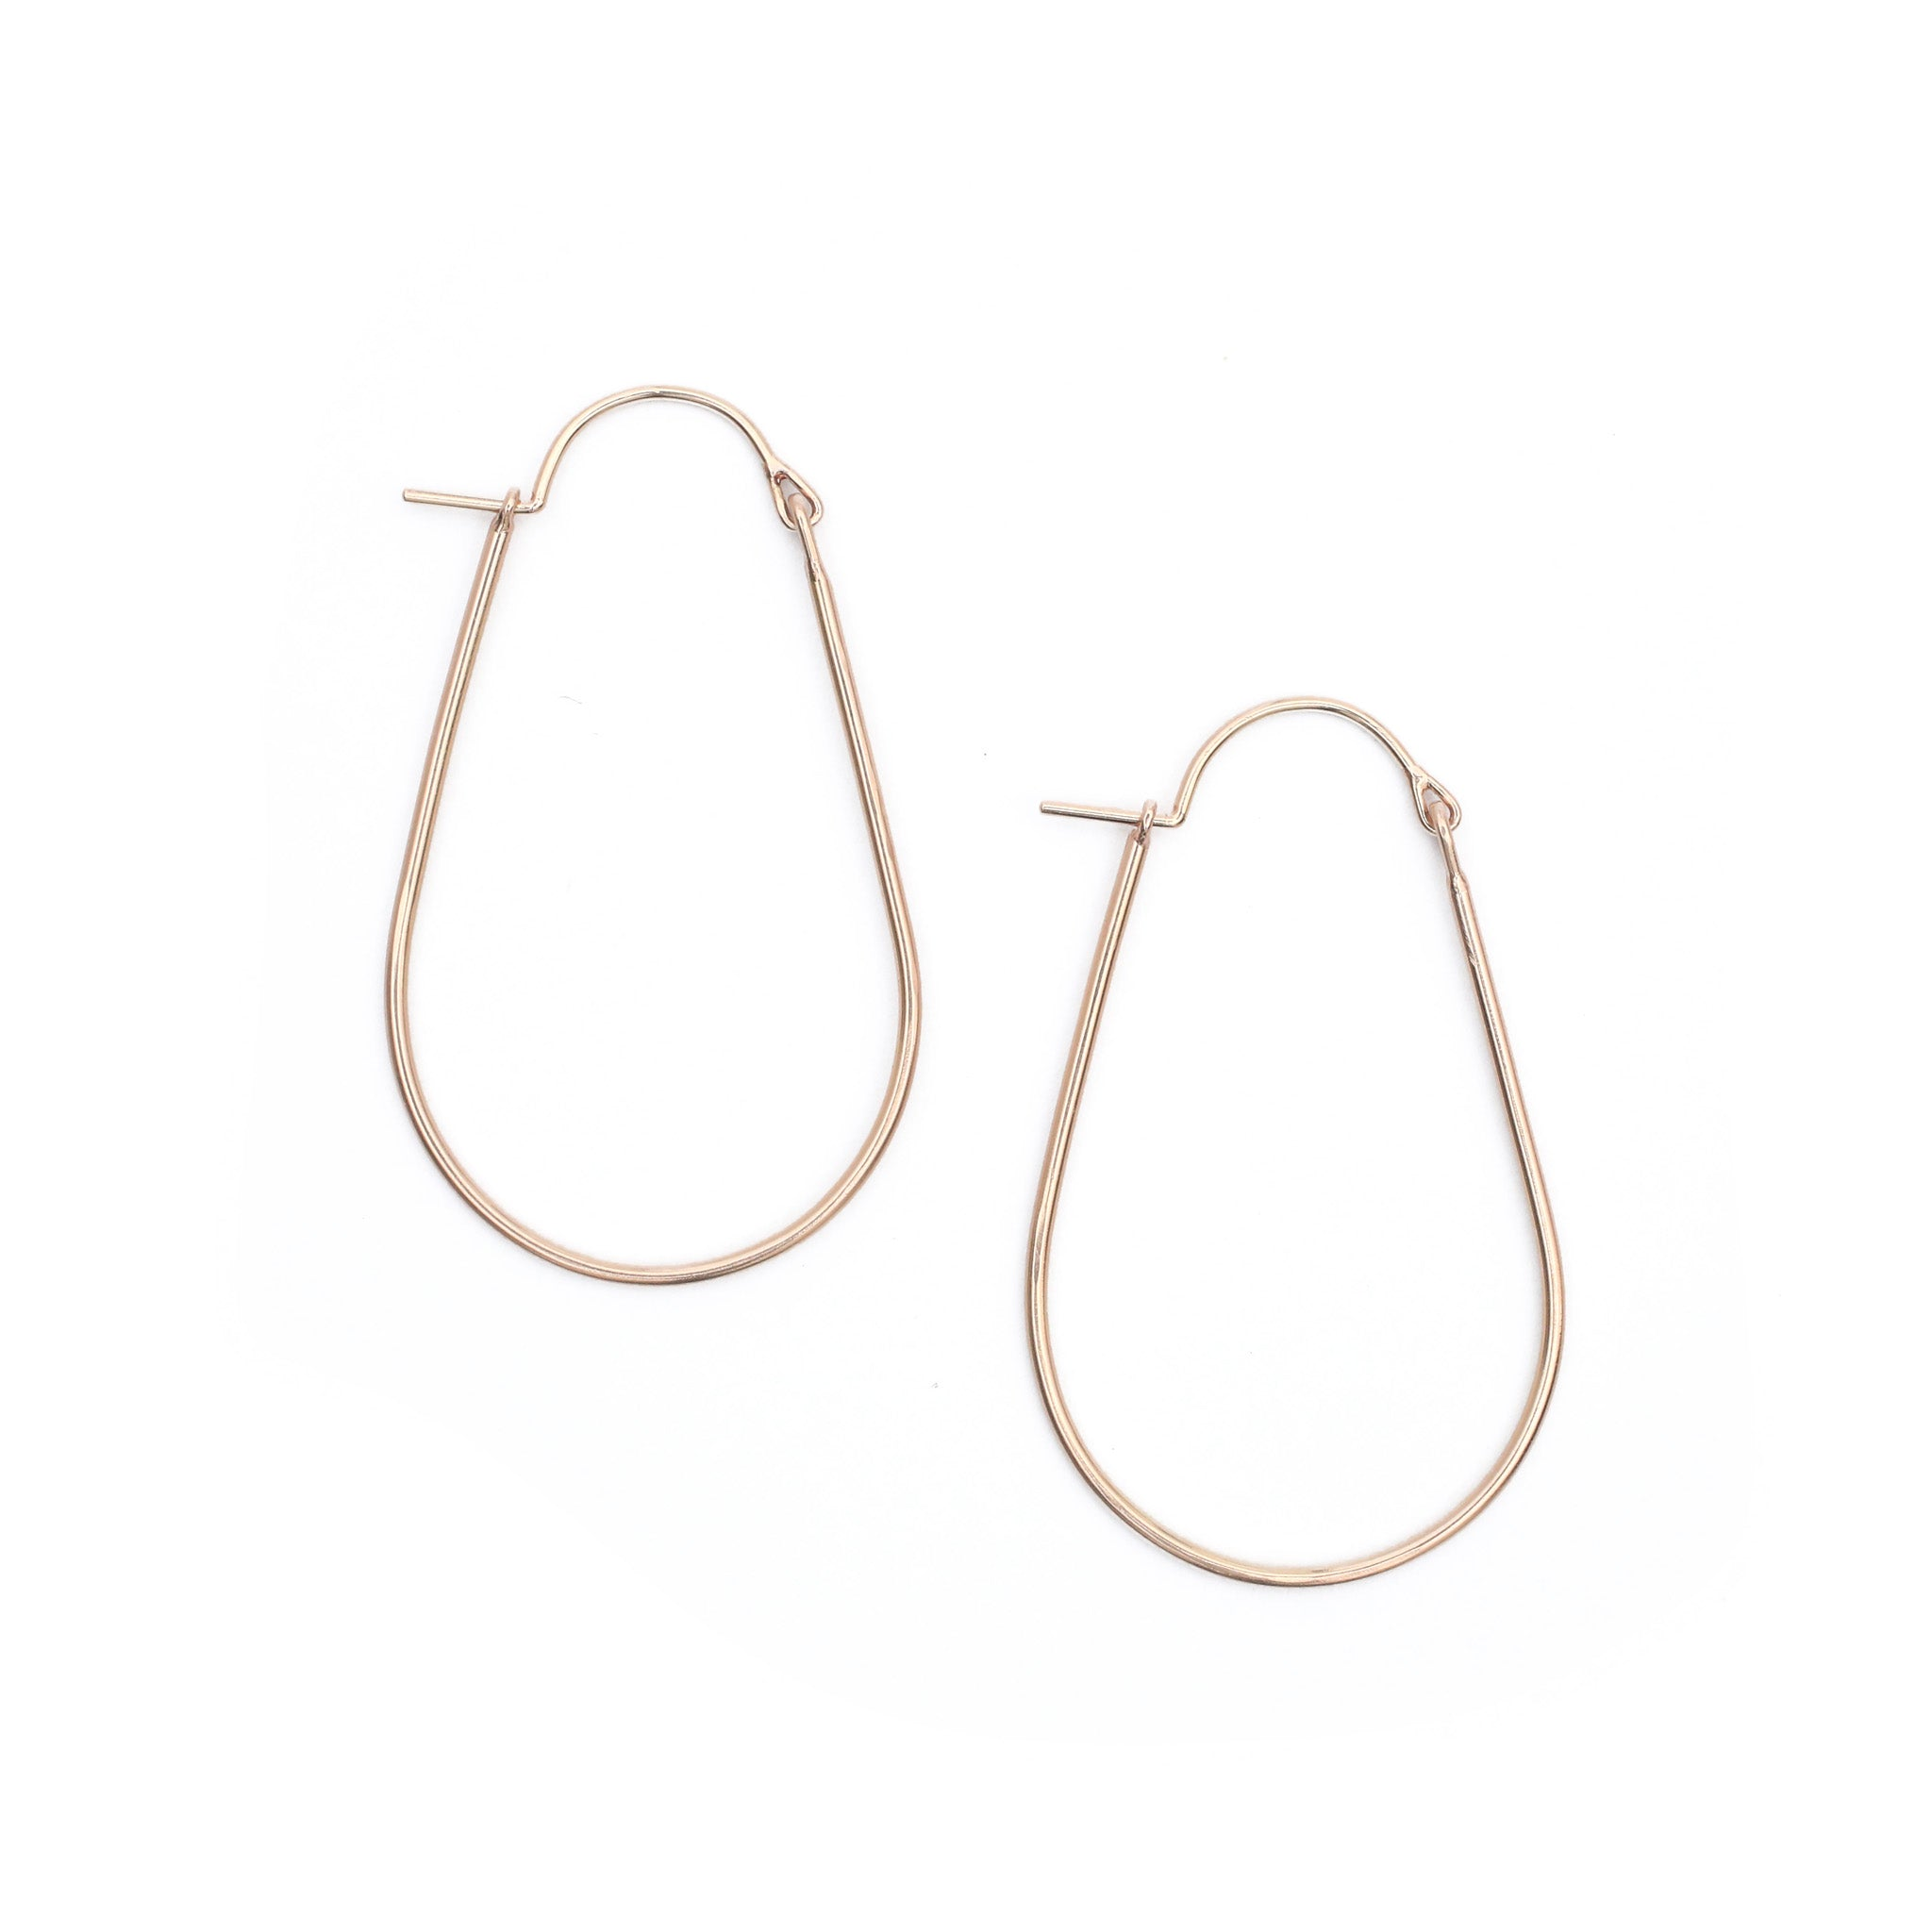 Elongated Valance Hoops - Medium